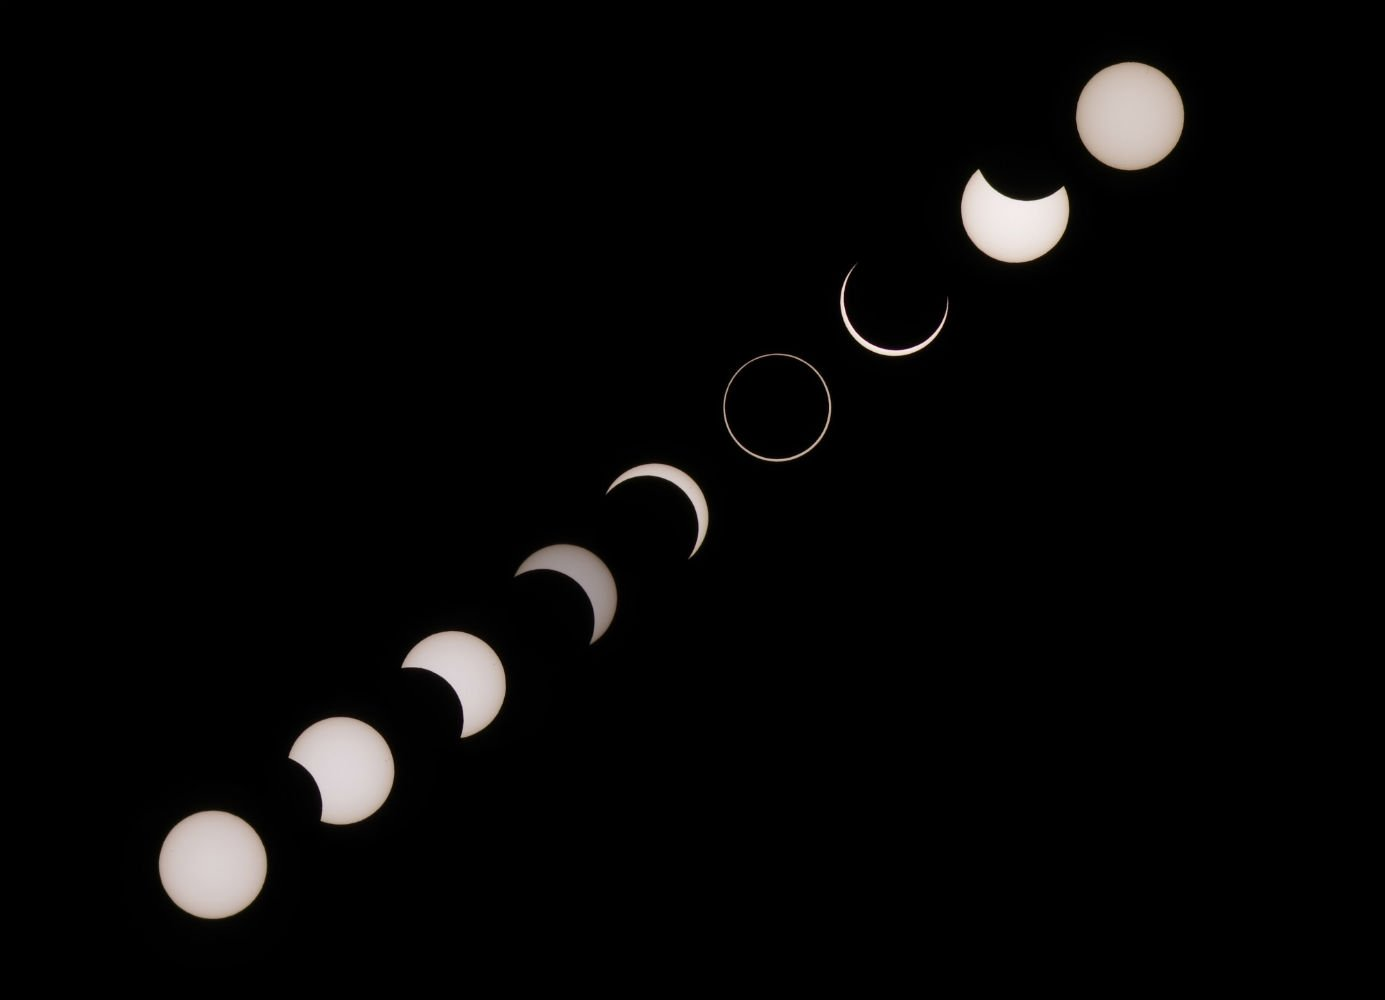 Eclipse_20160901_Composition1